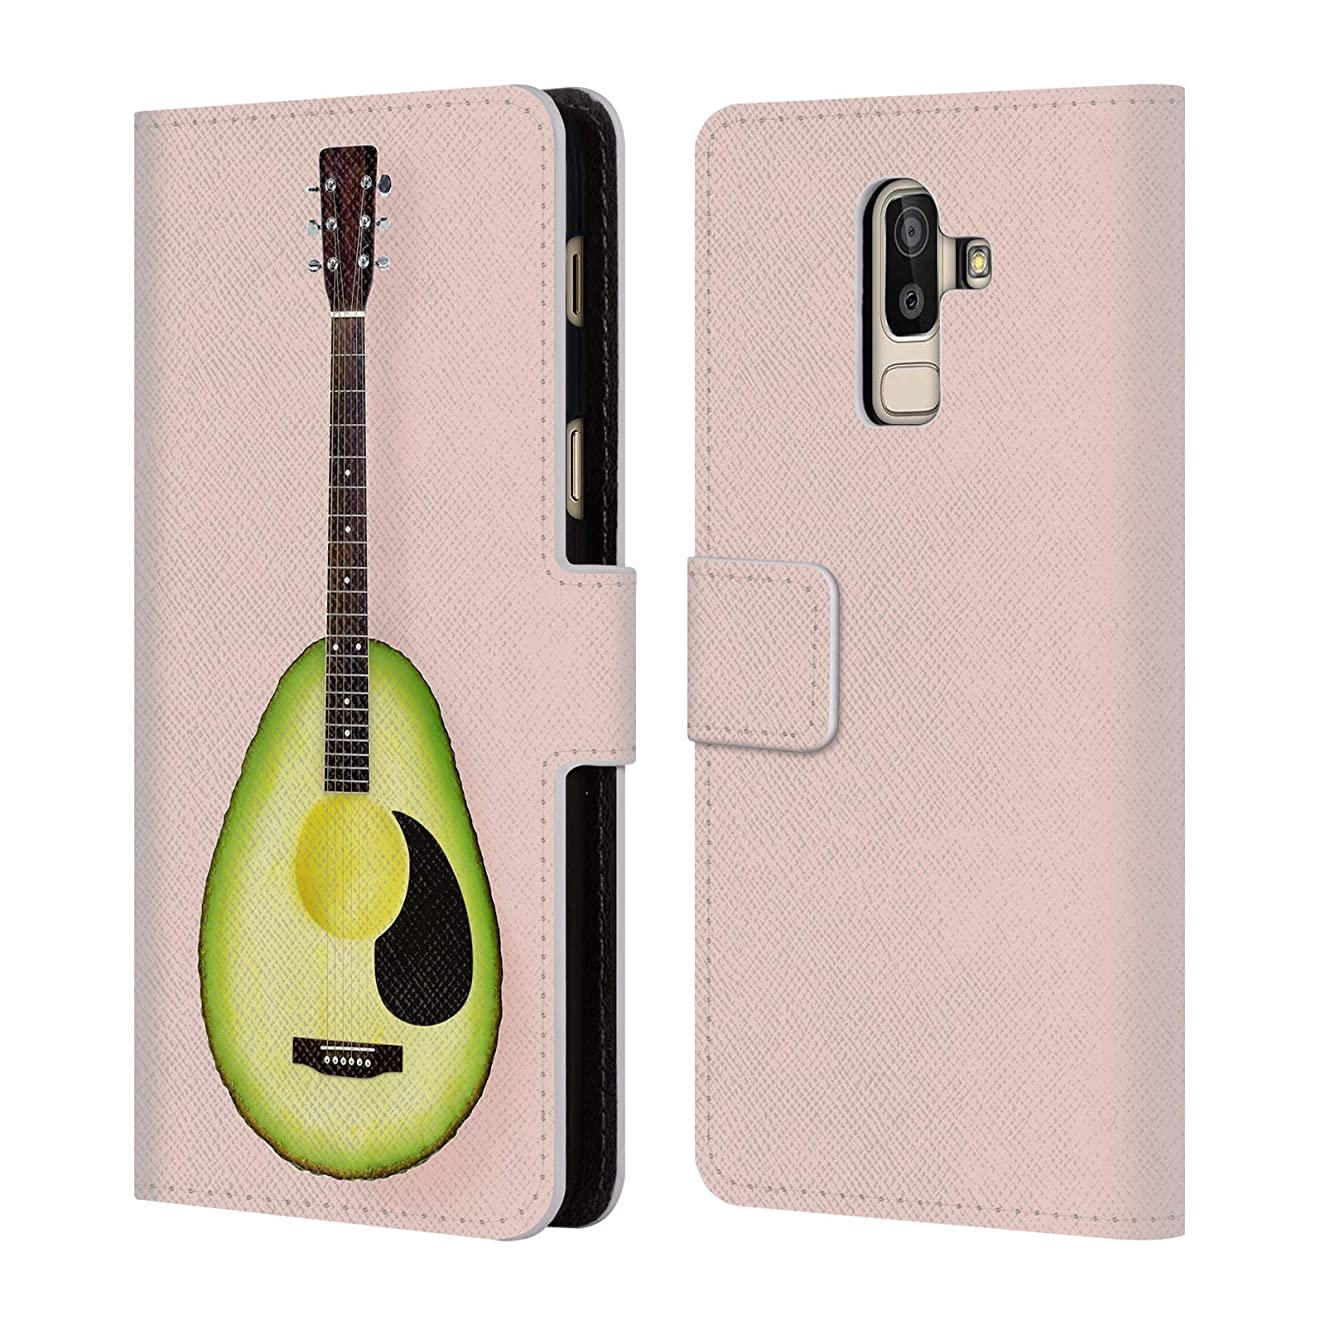 Official Paul Fuentes Avocado Guitar Pastels Leather Book Wallet Case Cover for Samsung Galaxy J8 (2018)